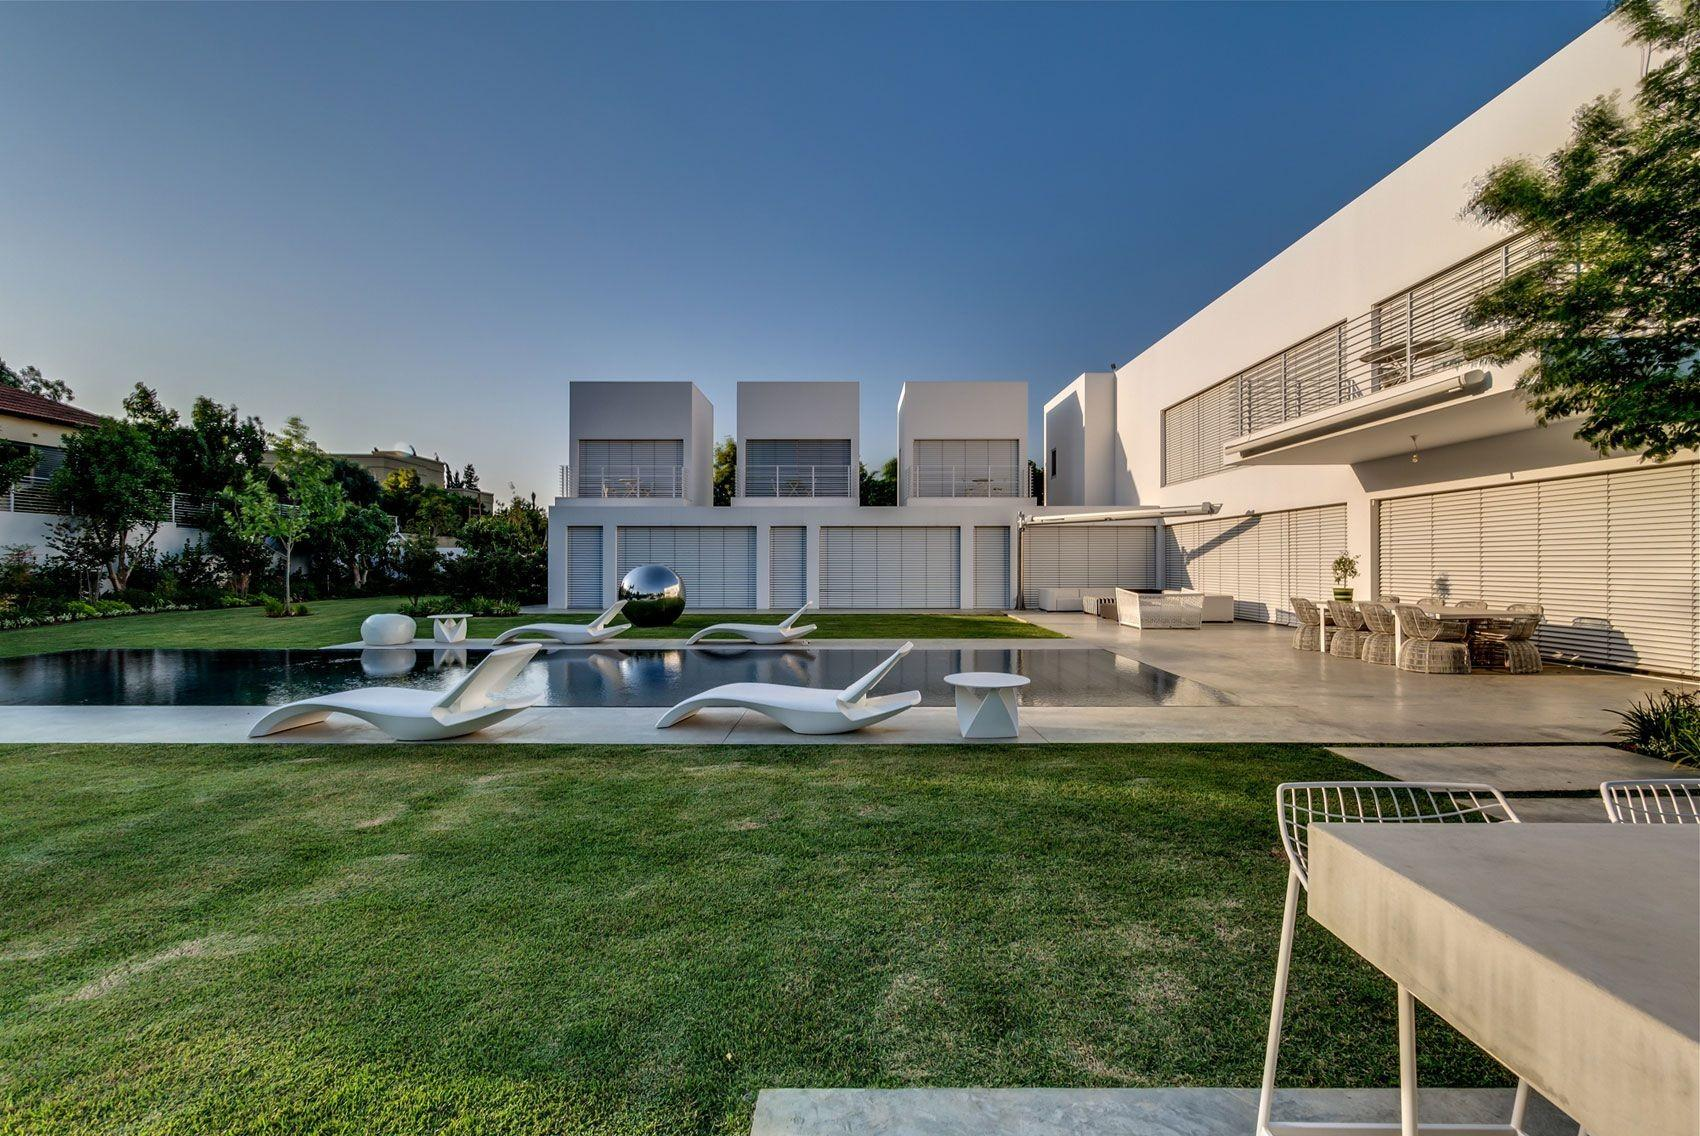 Israel Contemporary Residence Caandesign Architecture